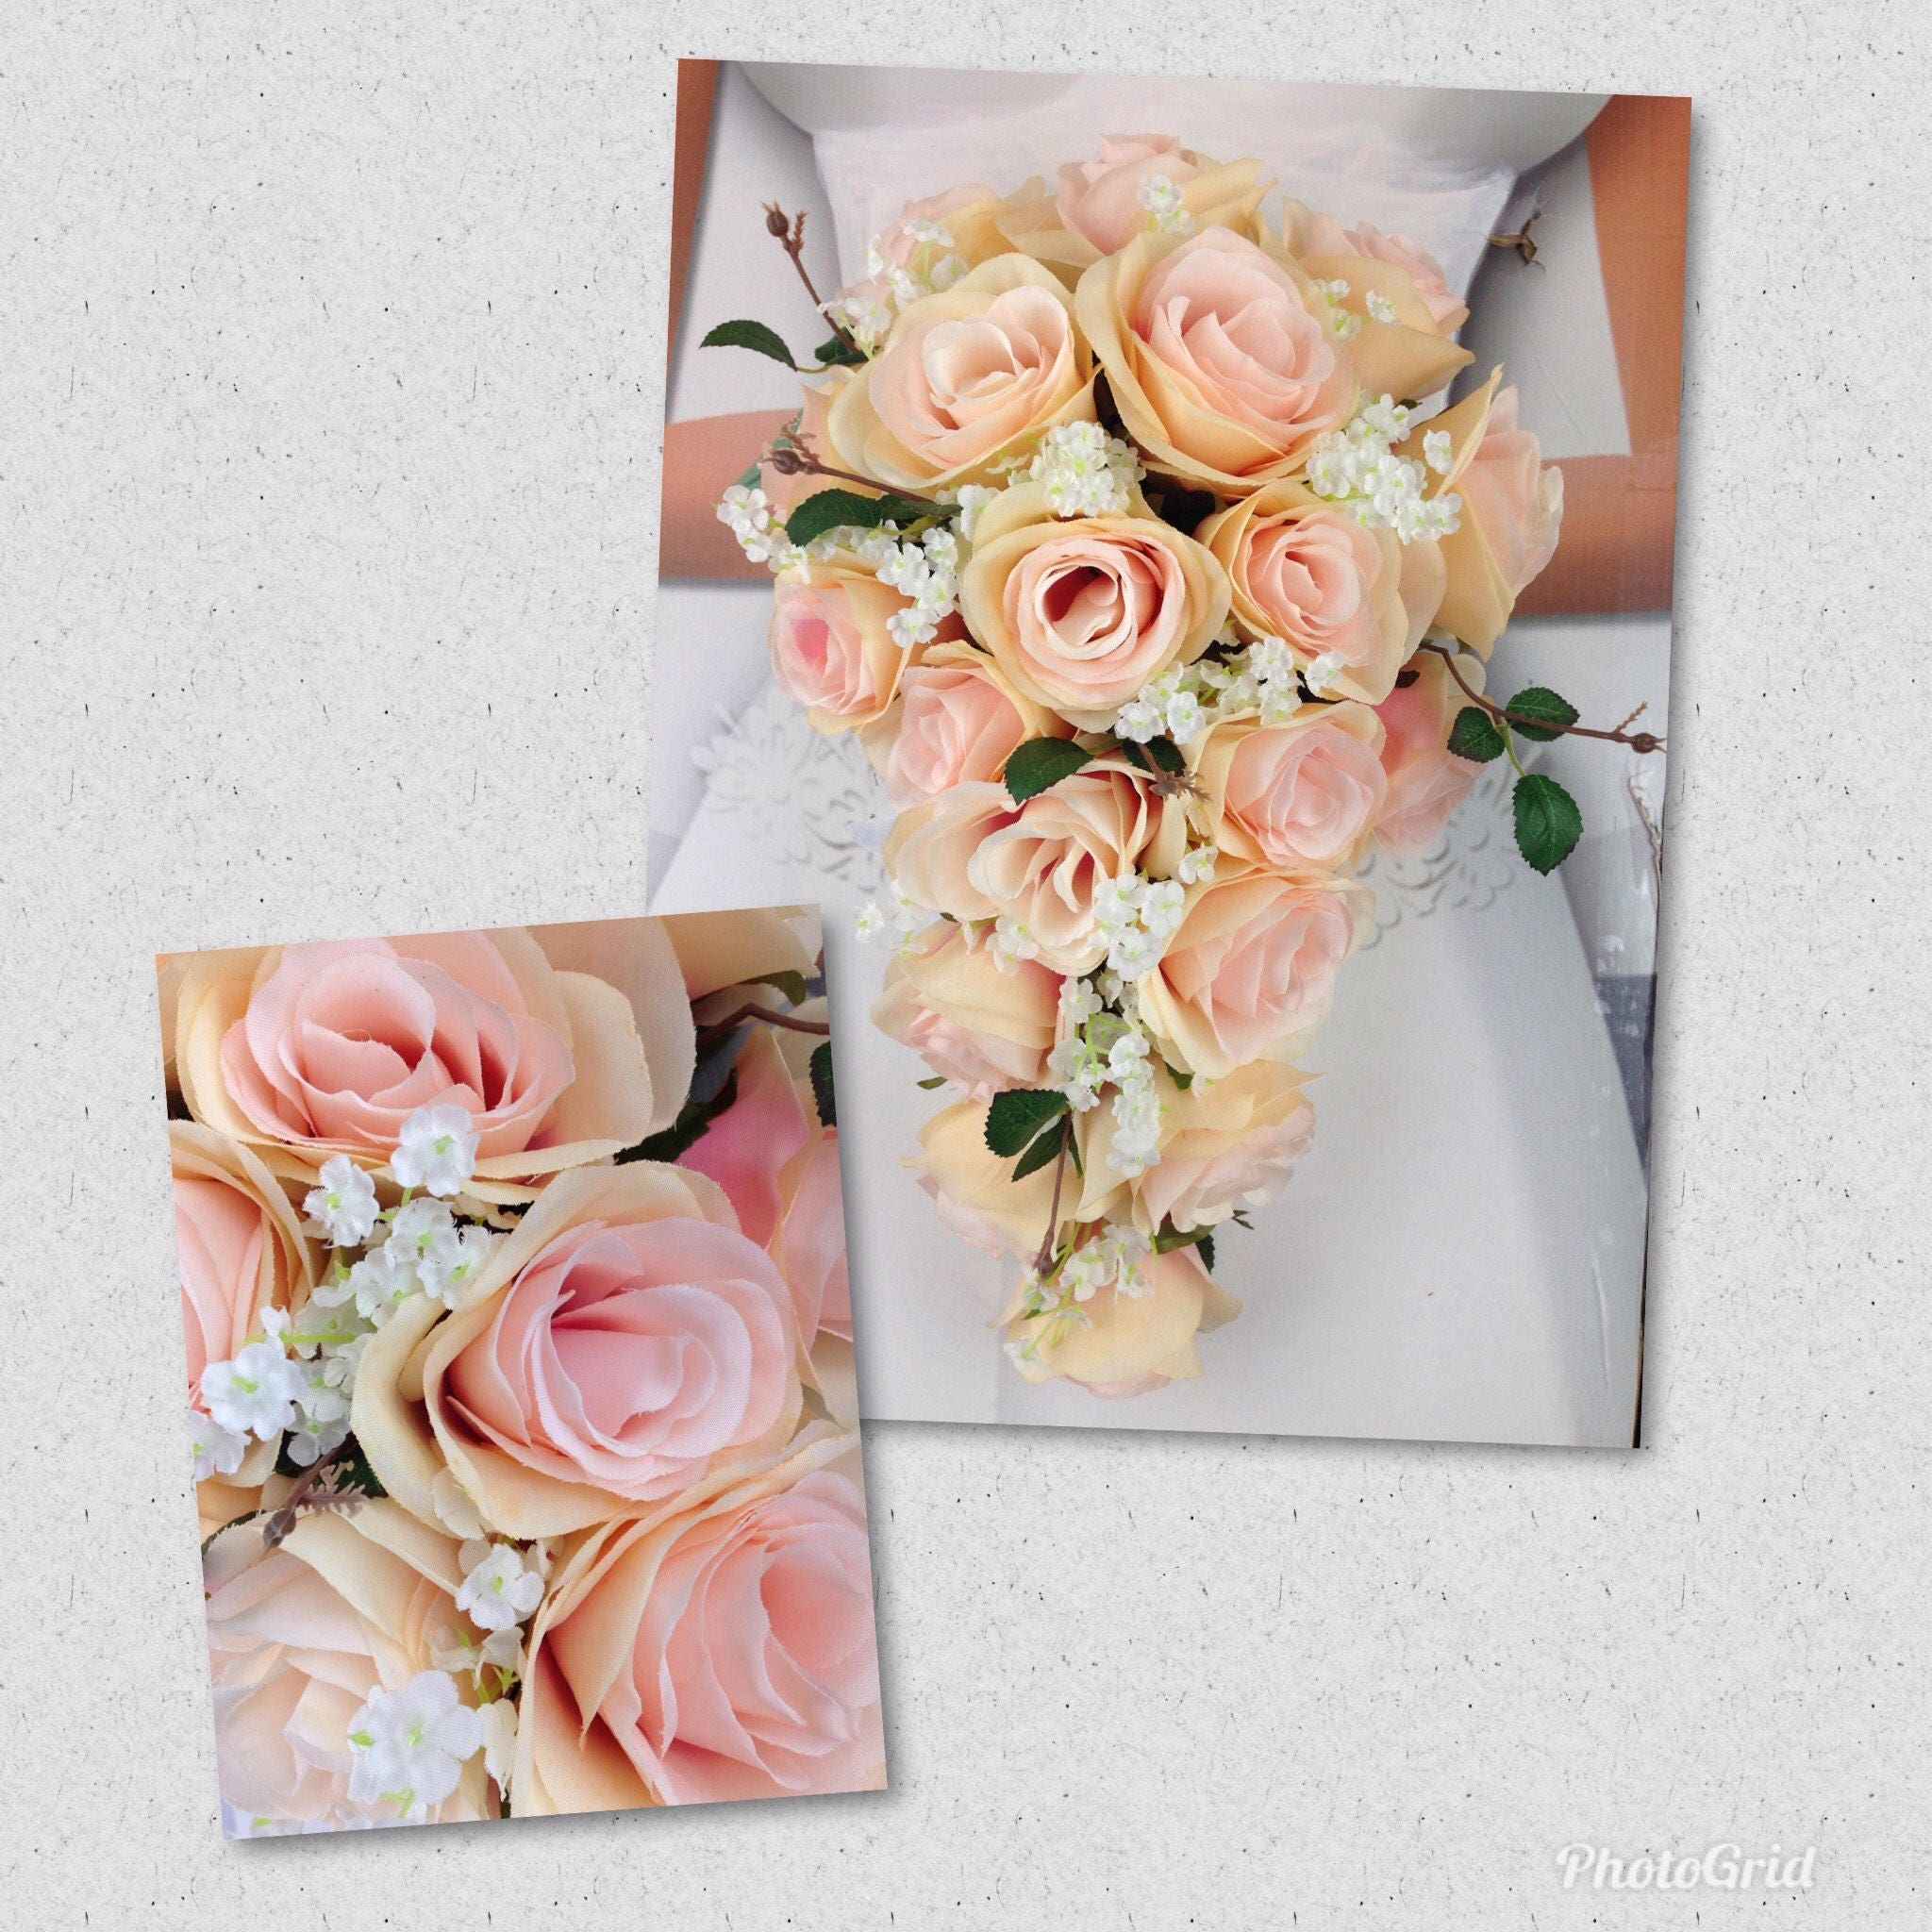 New Artificial Rose Gold Wedding Teardrop Bouquet, 15 in length ...